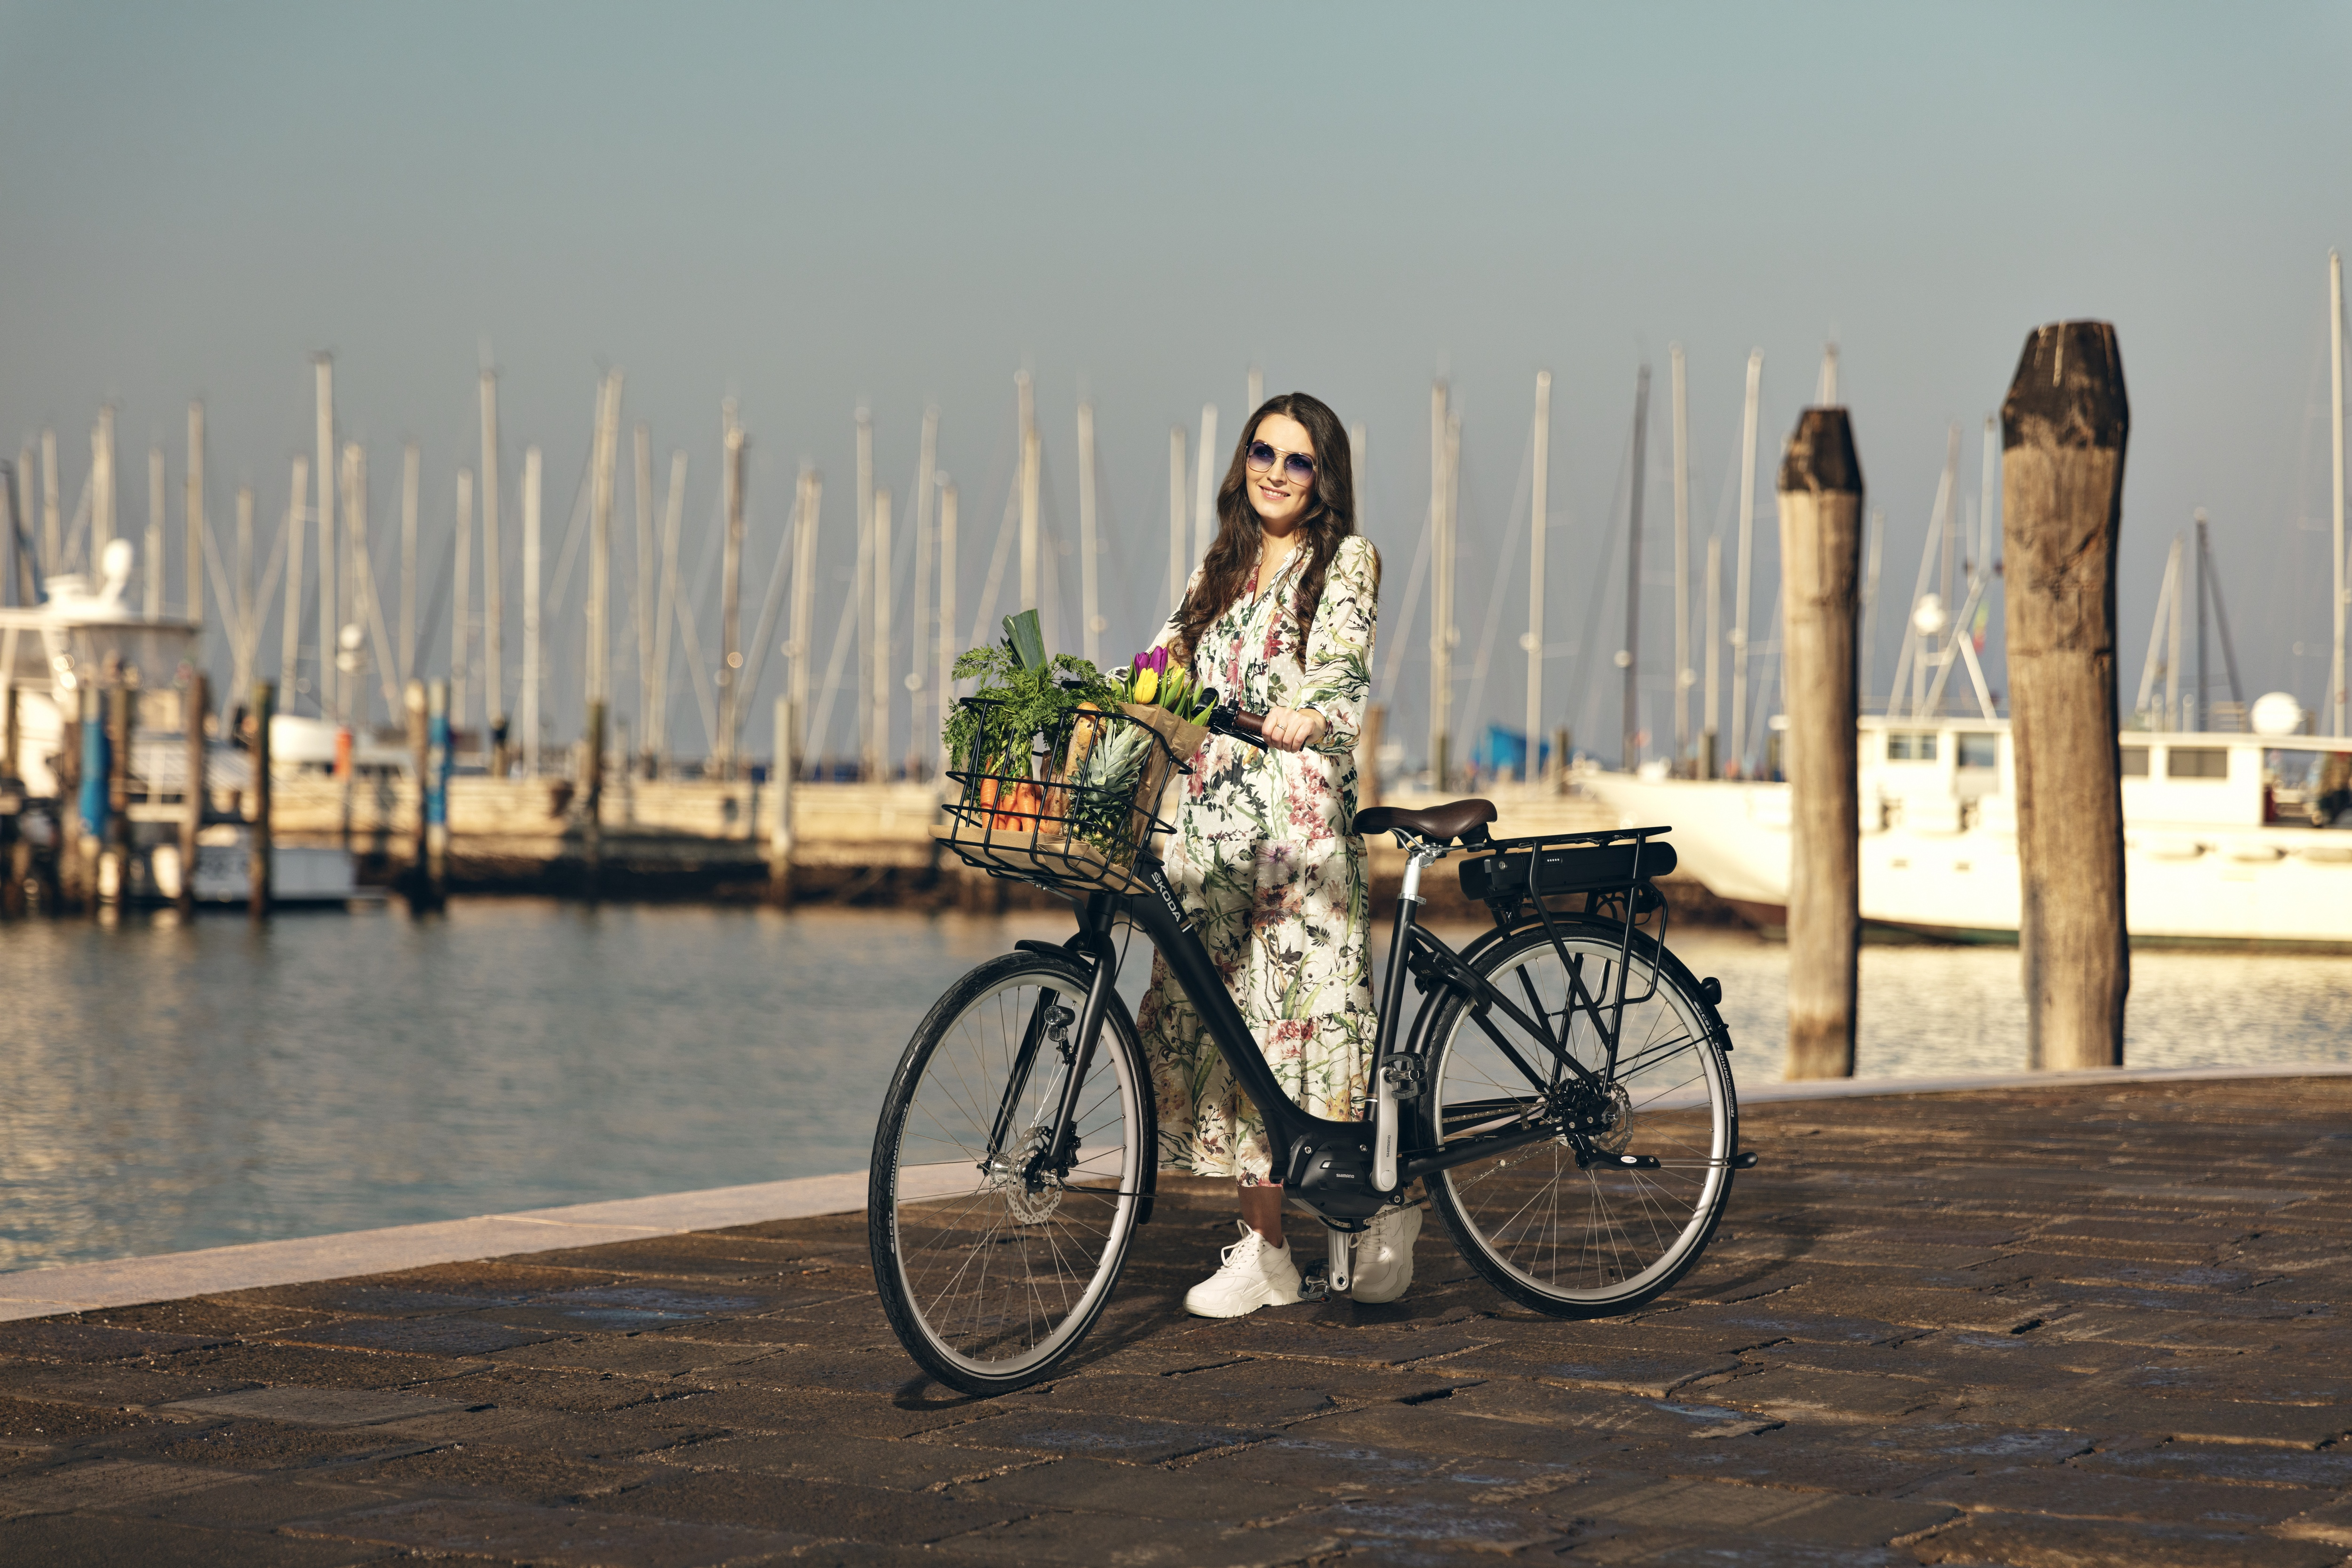 World Bicycle Day 2020 and SKODA: A tradition of excellence on two wheels, too - Image 4